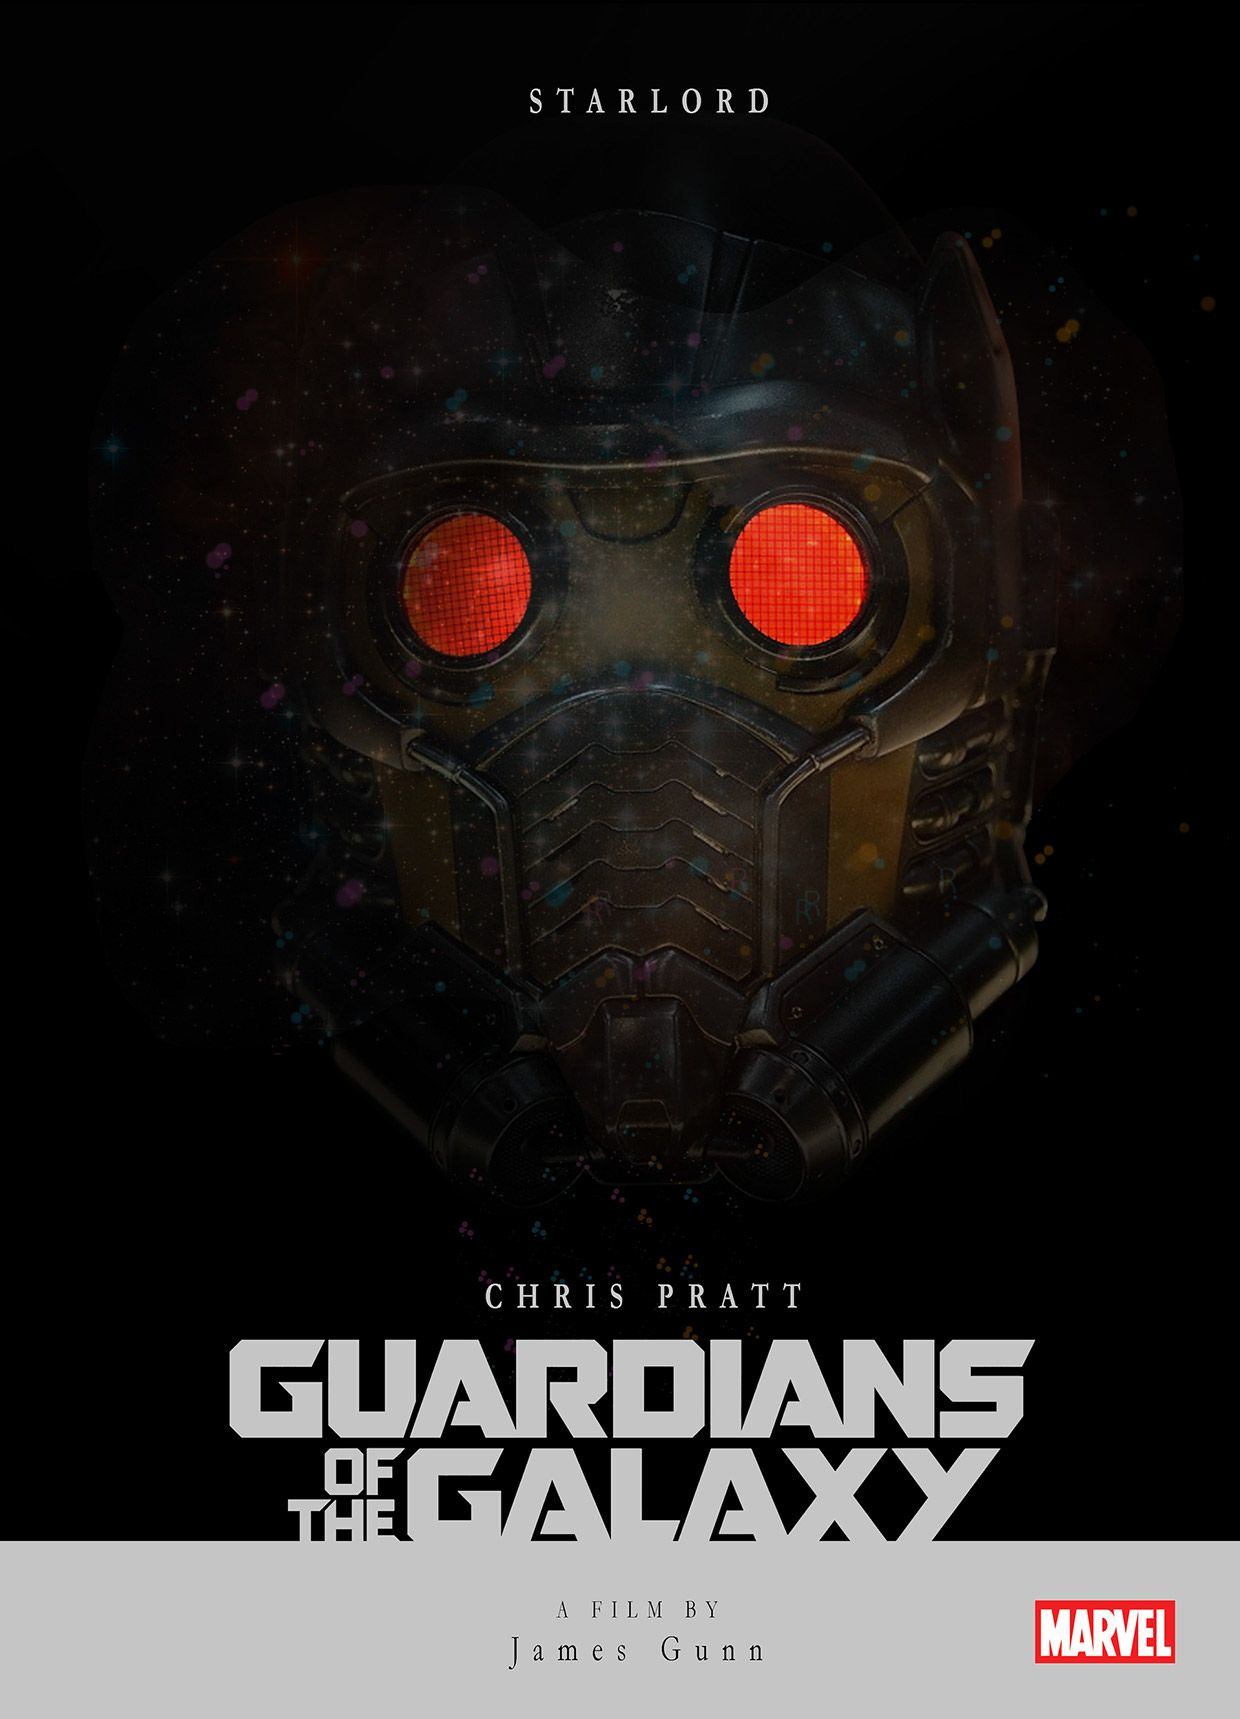 Character poster for Guardians Of The Galaxy by David Wilson. #Poster #GuardiansOfTheGalaxy #GotG